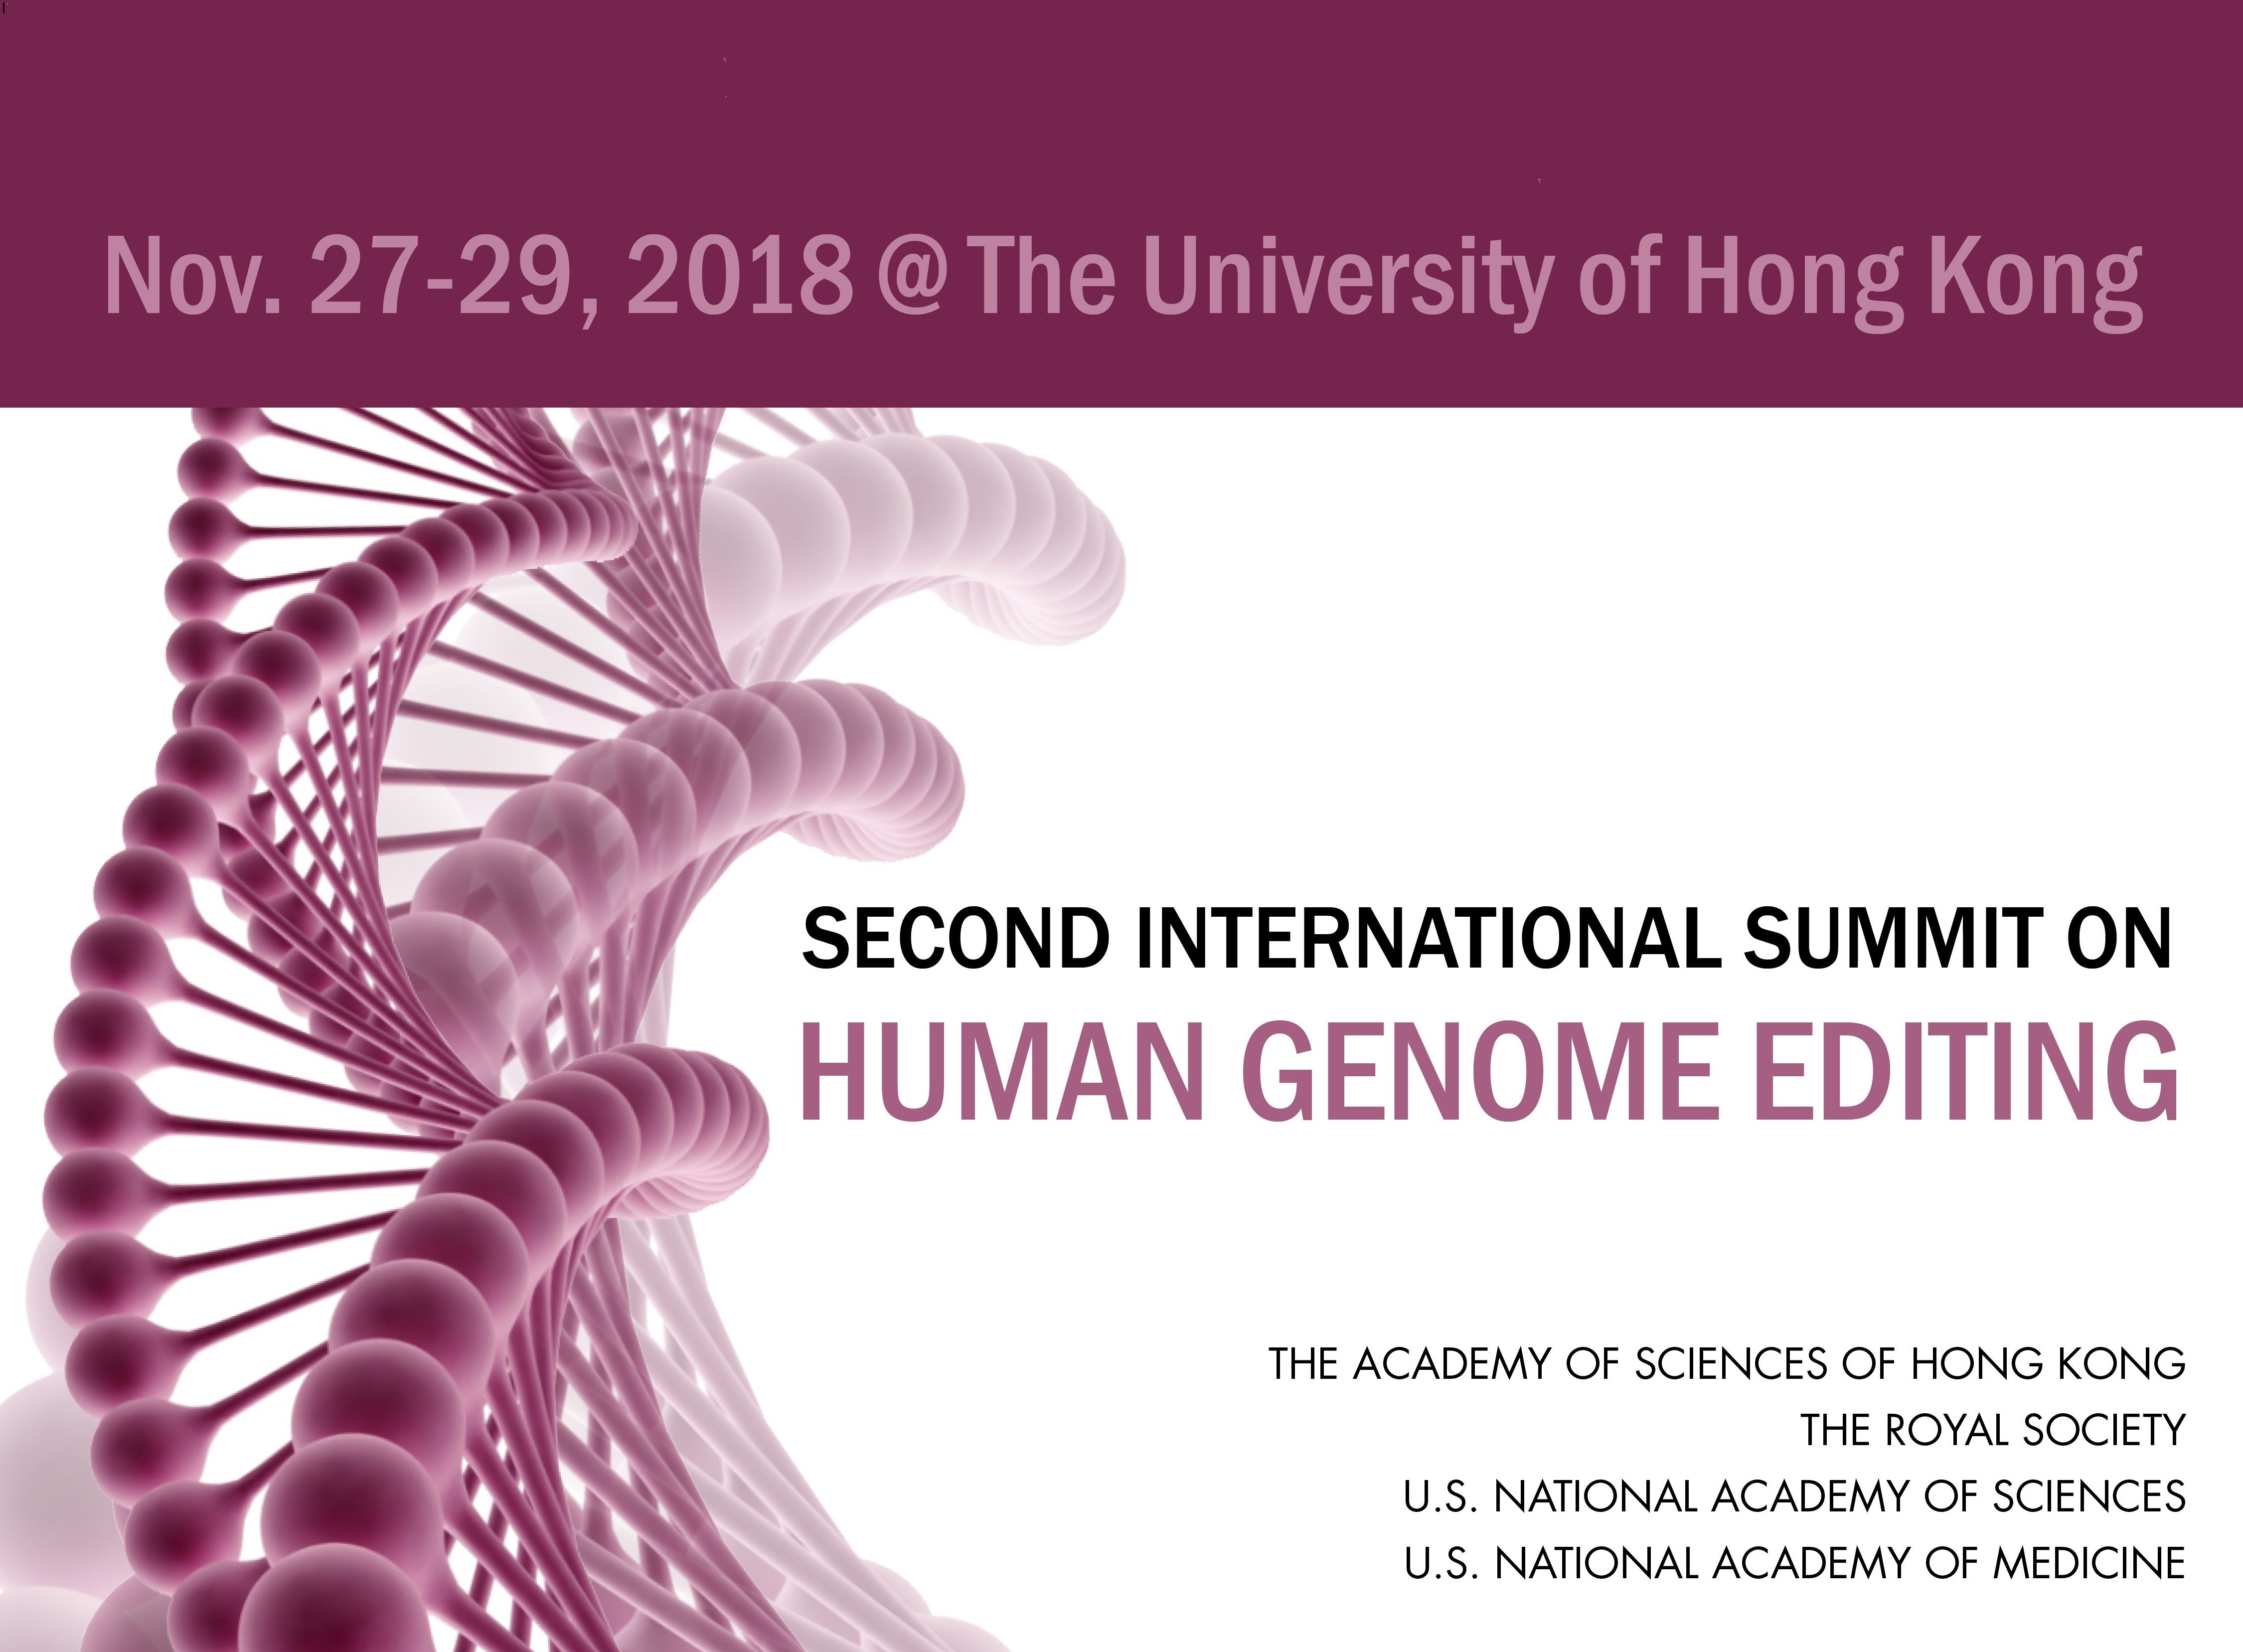 The Hong Kong Academy of Sciences, the Royal Society of London, the U.S. National Academy of Sciences, and the U.S. National Academy of Medicine co-hosted the Second International Summit on Human Genome Editing in Hong Kong